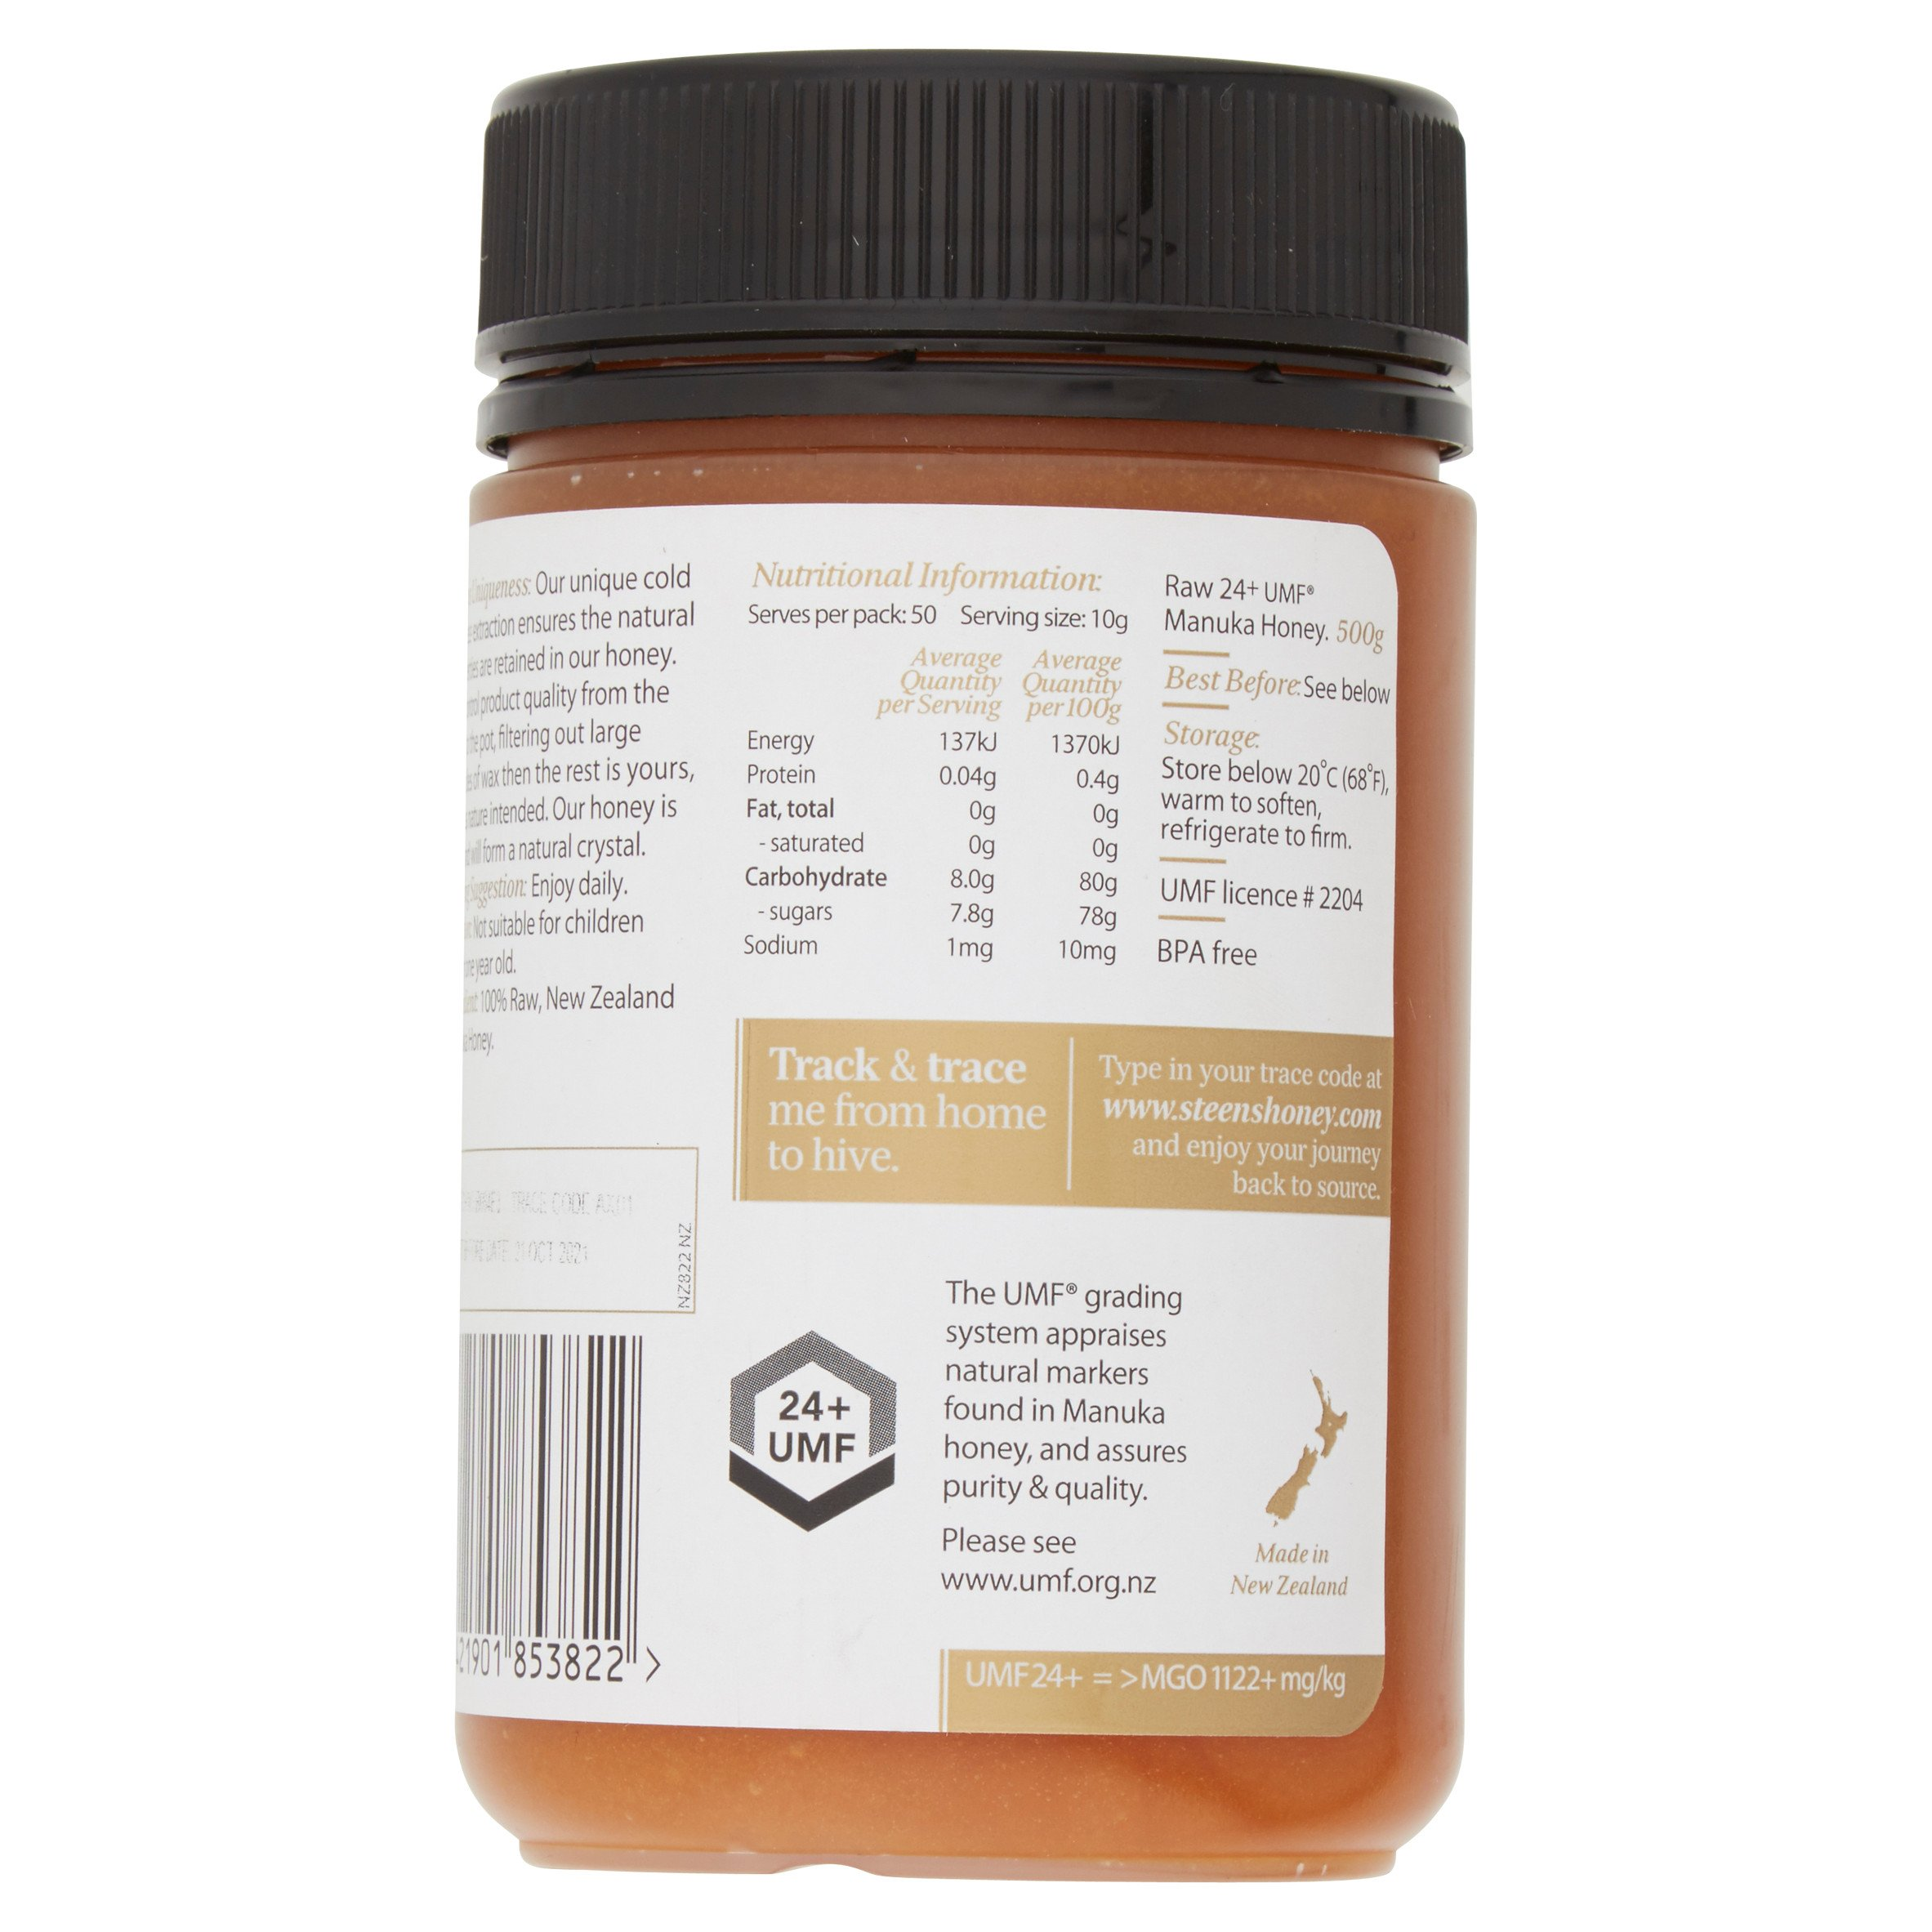 Steens Manuka Honey UMF 24 (MGO 1122) 17.6 Ounce jar | Pure Raw Unpasteurized Honey From New Zealand NZ | Traceability Code on Each Label by Steens (Image #8)